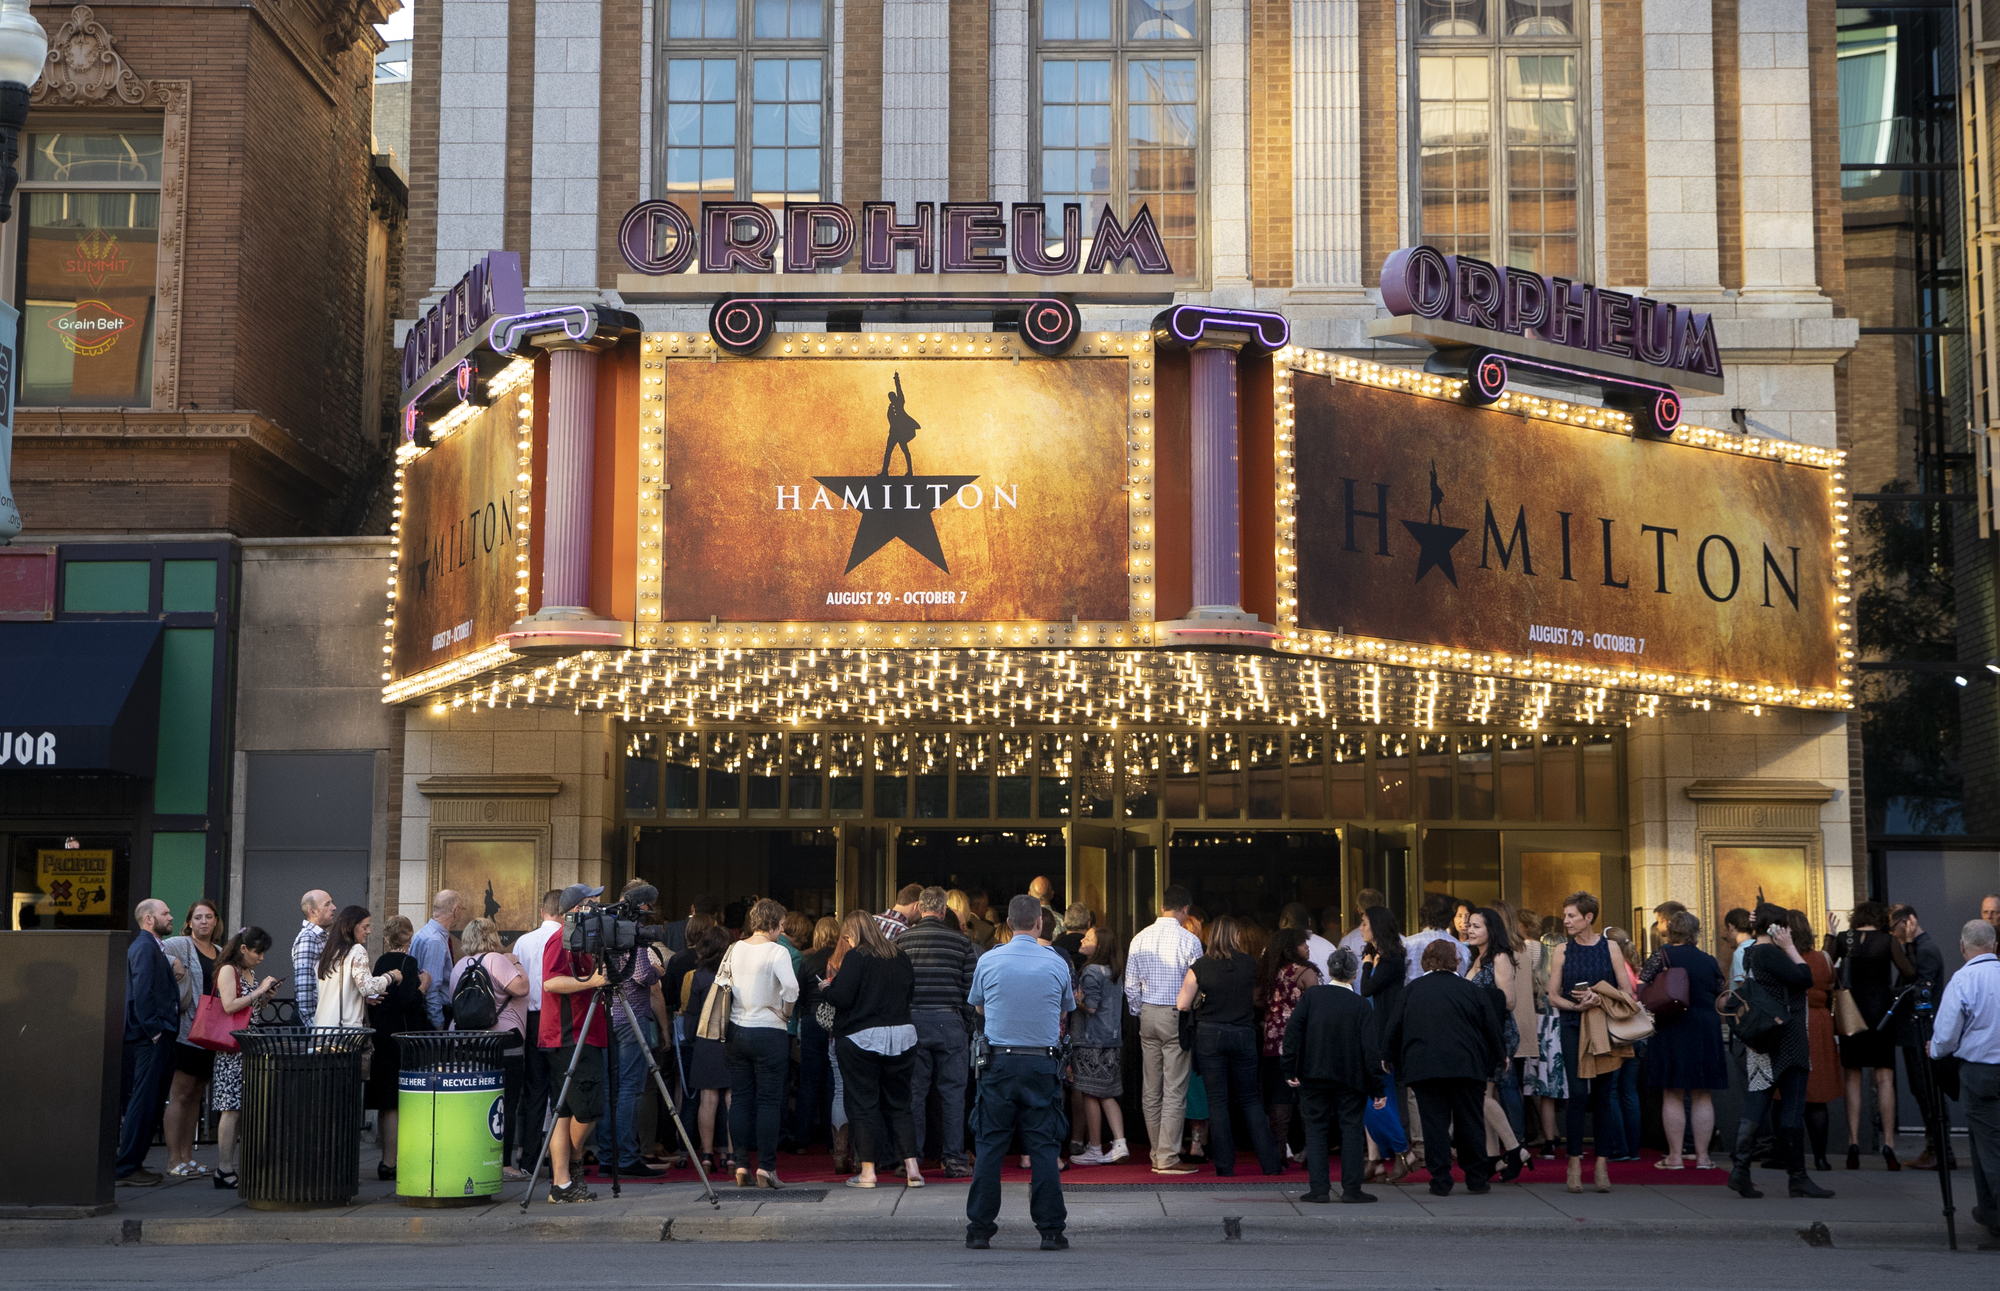 A large crowd lined up to get in to opening night of Hamilton at the Orpheum Theatre in 2018.